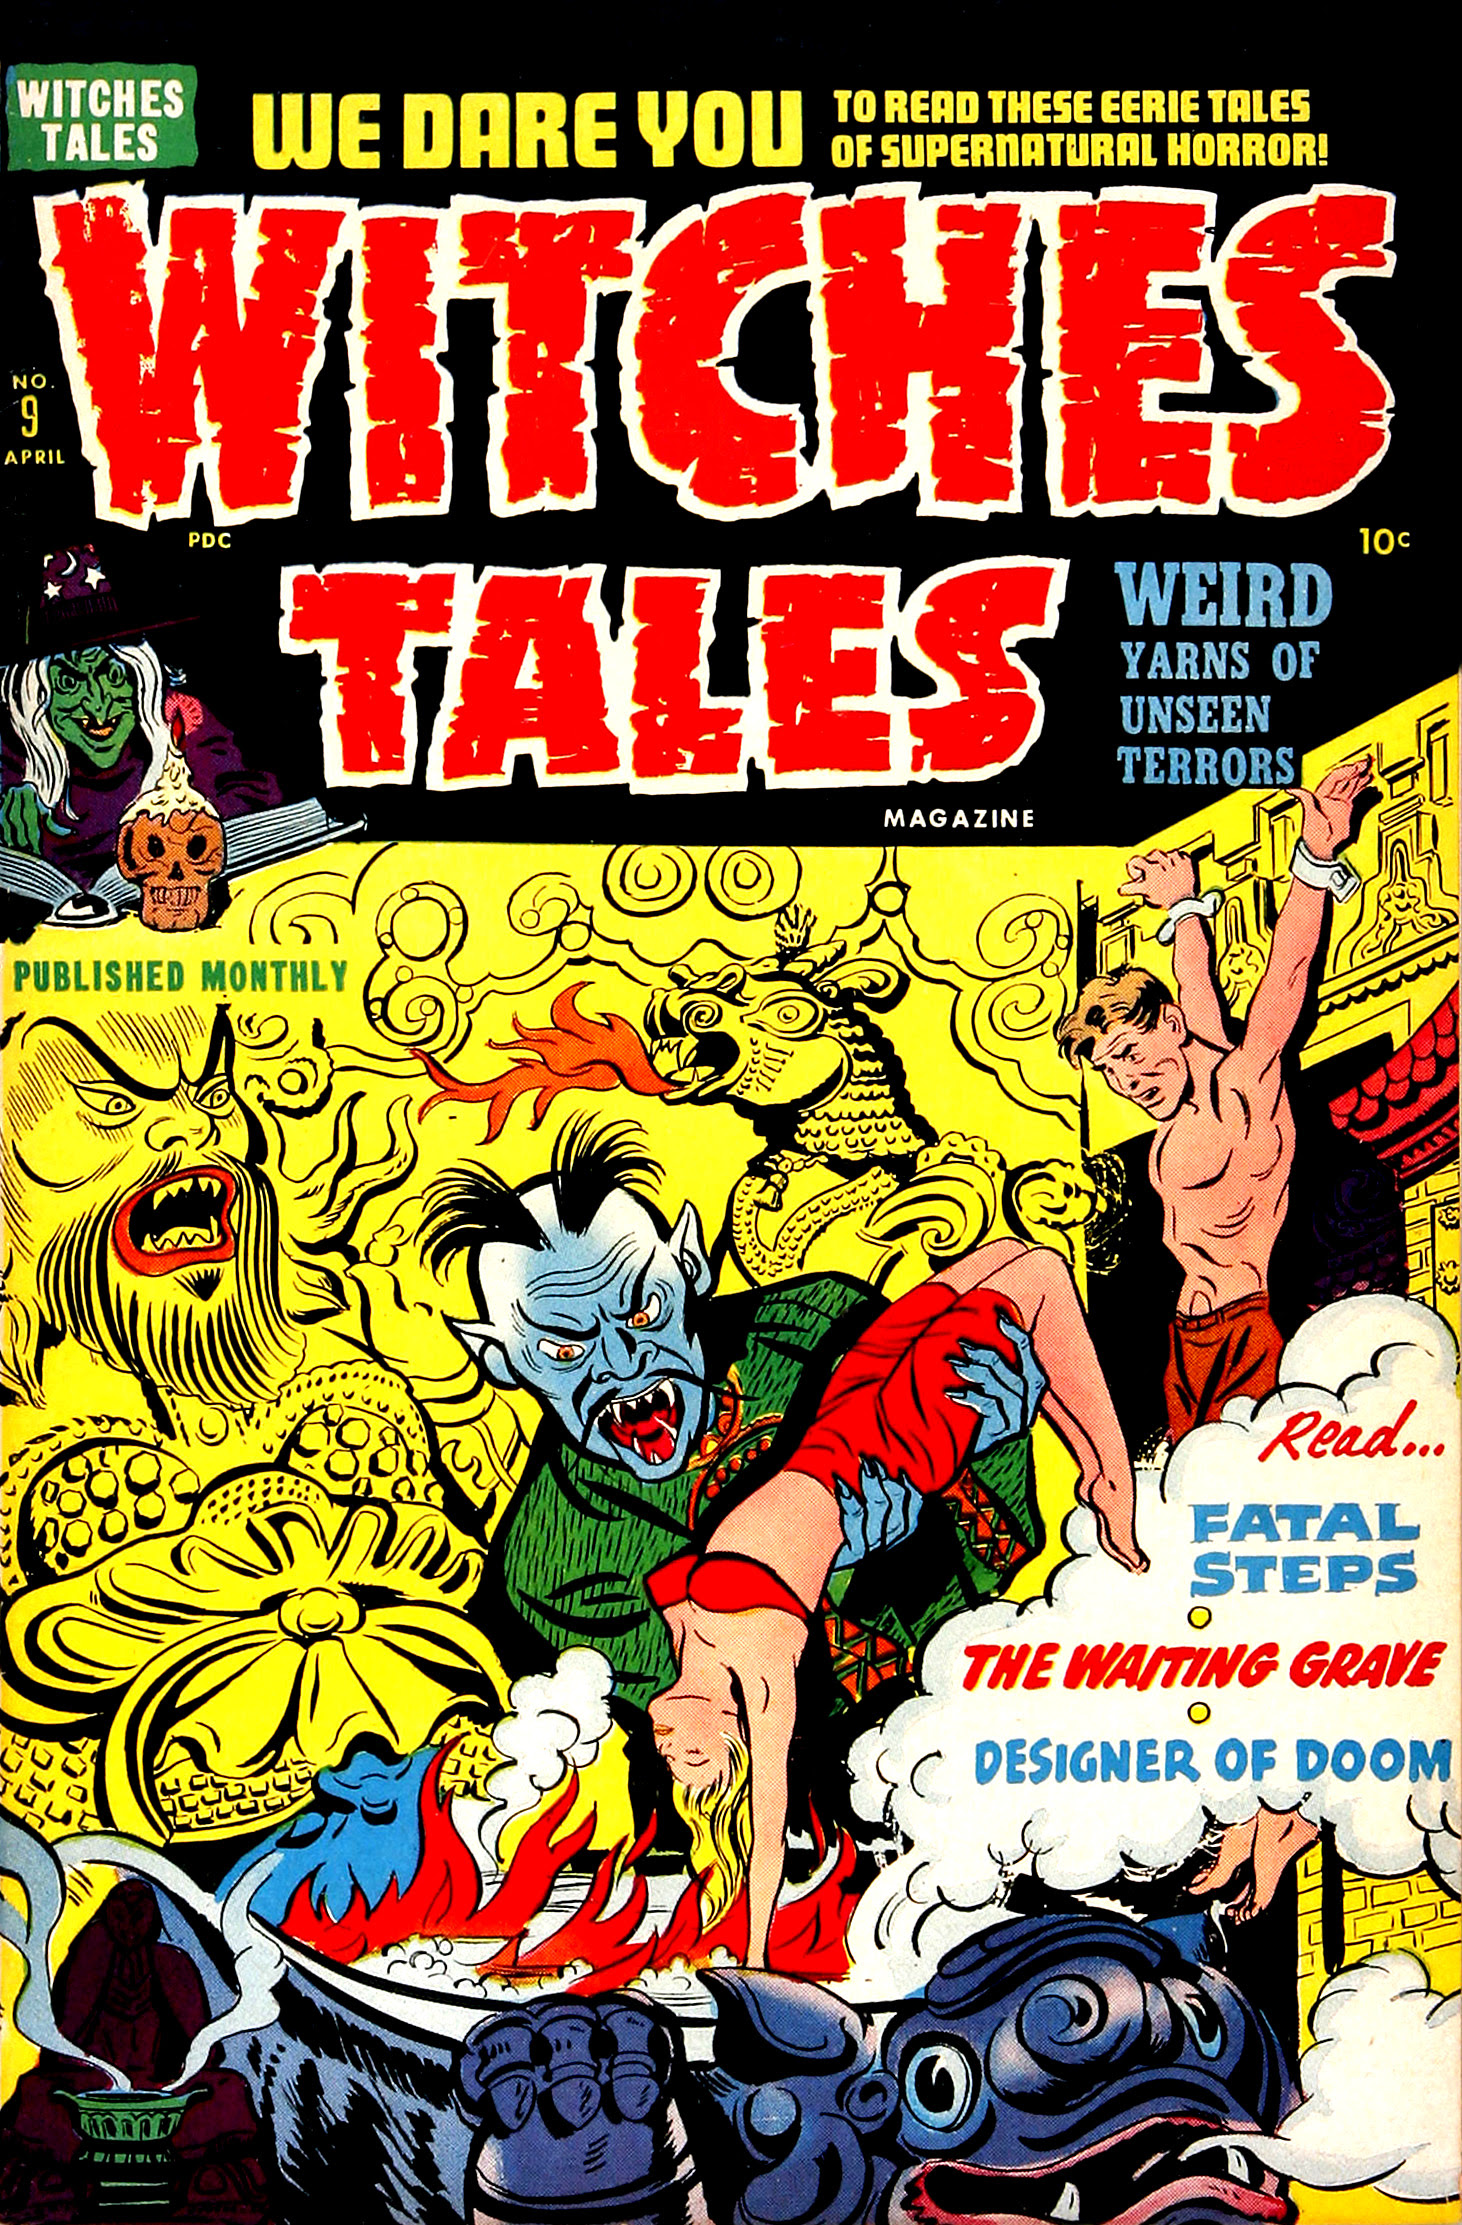 Witches Tales #9, Al Avison Cover (Harvey, 1952)